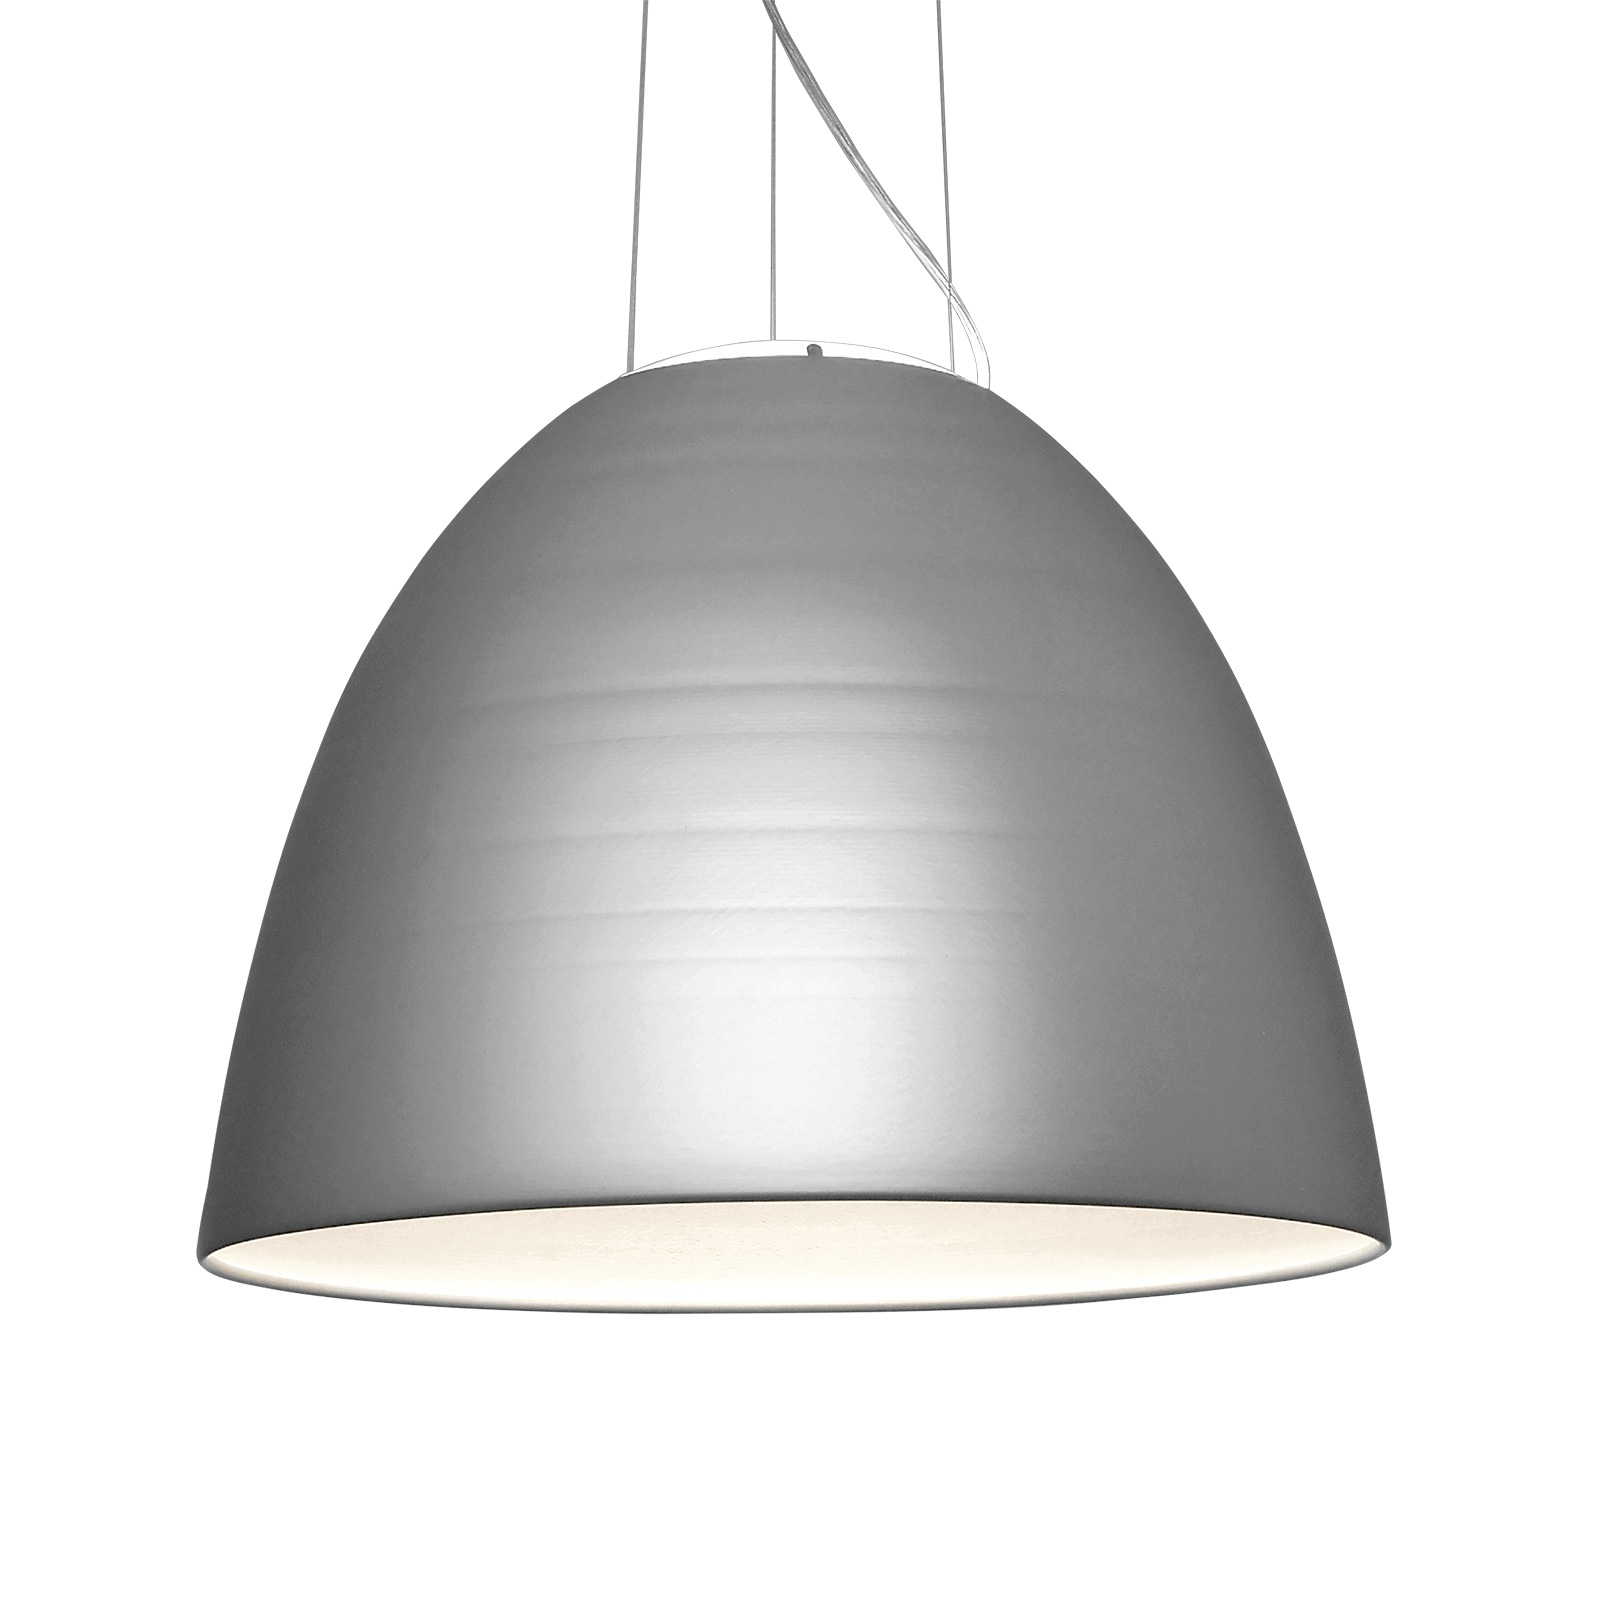 Artemide Nur 1618 suspension LED gris métal